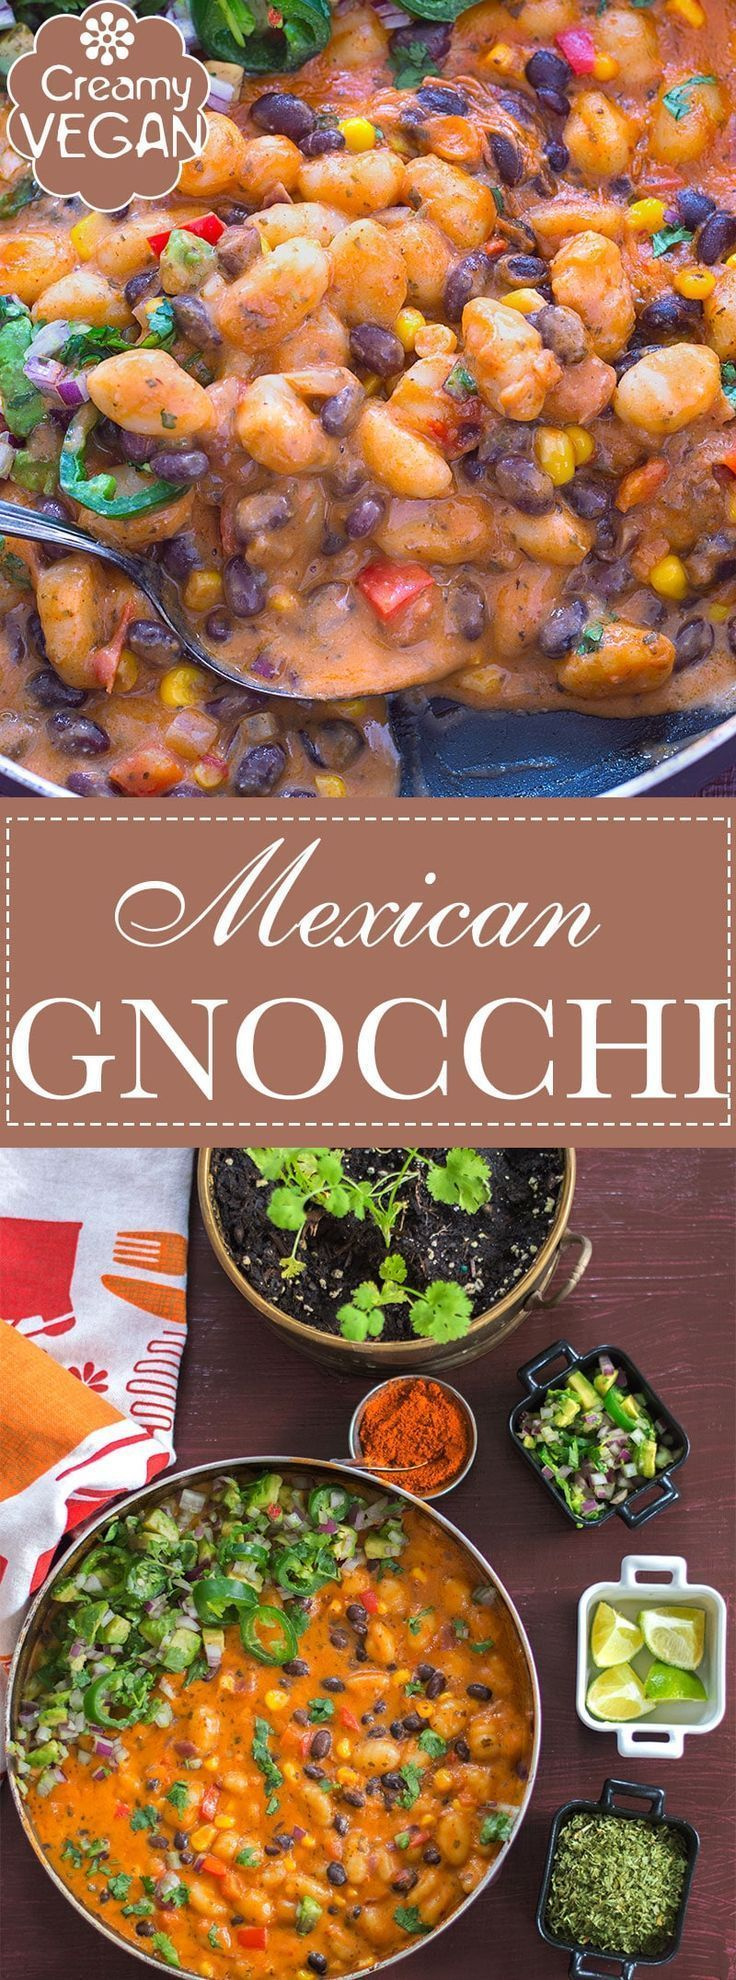 This vegan mexican gnocchi recipe is the perfect comfort food its a this vegan mexican gnocchi recipe is the perfect comfort food its a quick and easy one pot weeknight dinner recipe for the whole family to enjoy forumfinder Images